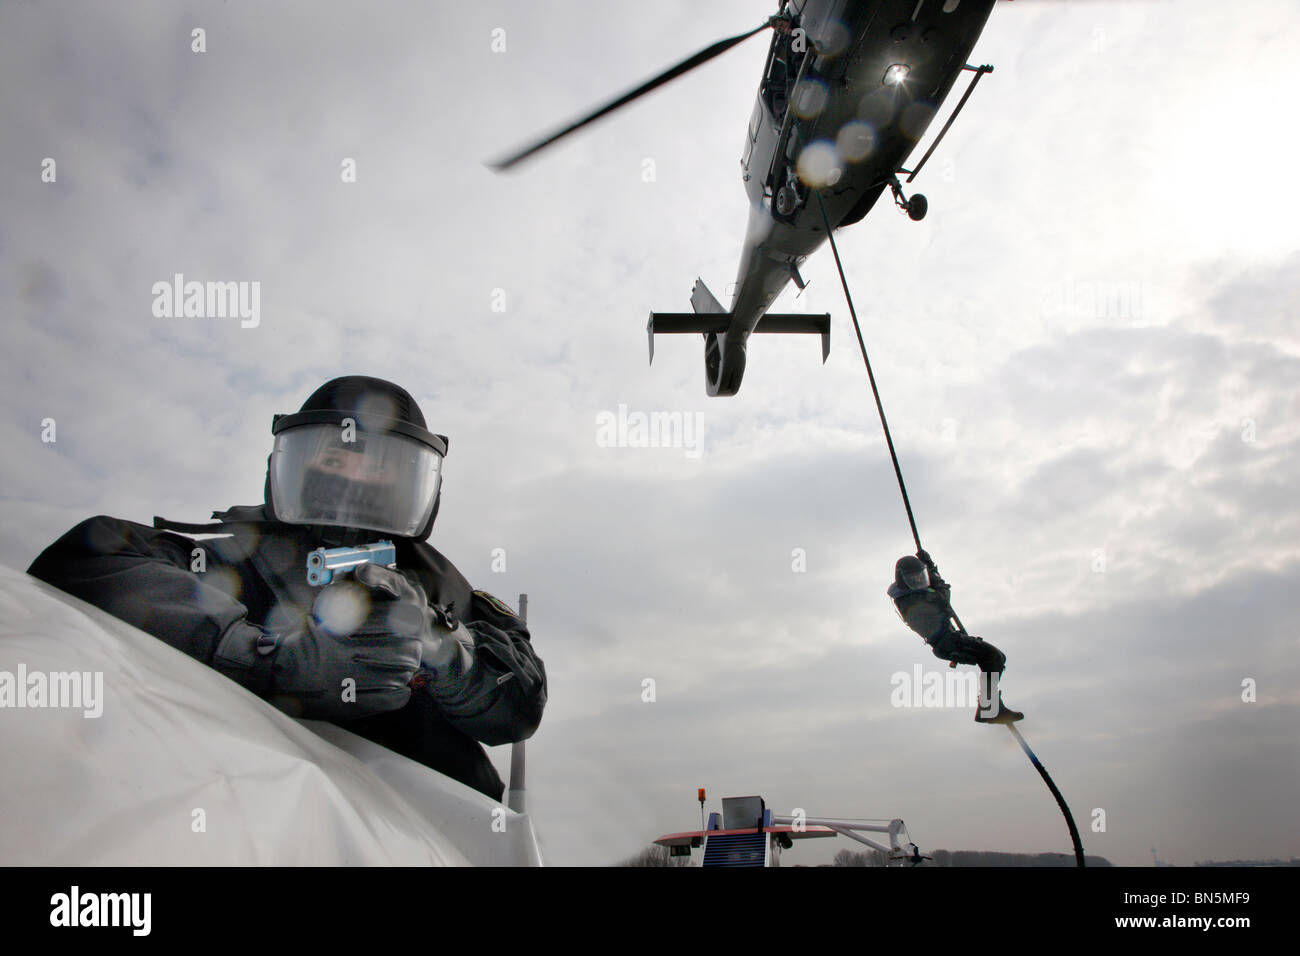 Police SWAT Team at an exercise. Anti terrorism and crime unit, special police forces. Storming a passenger ship - Stock Image